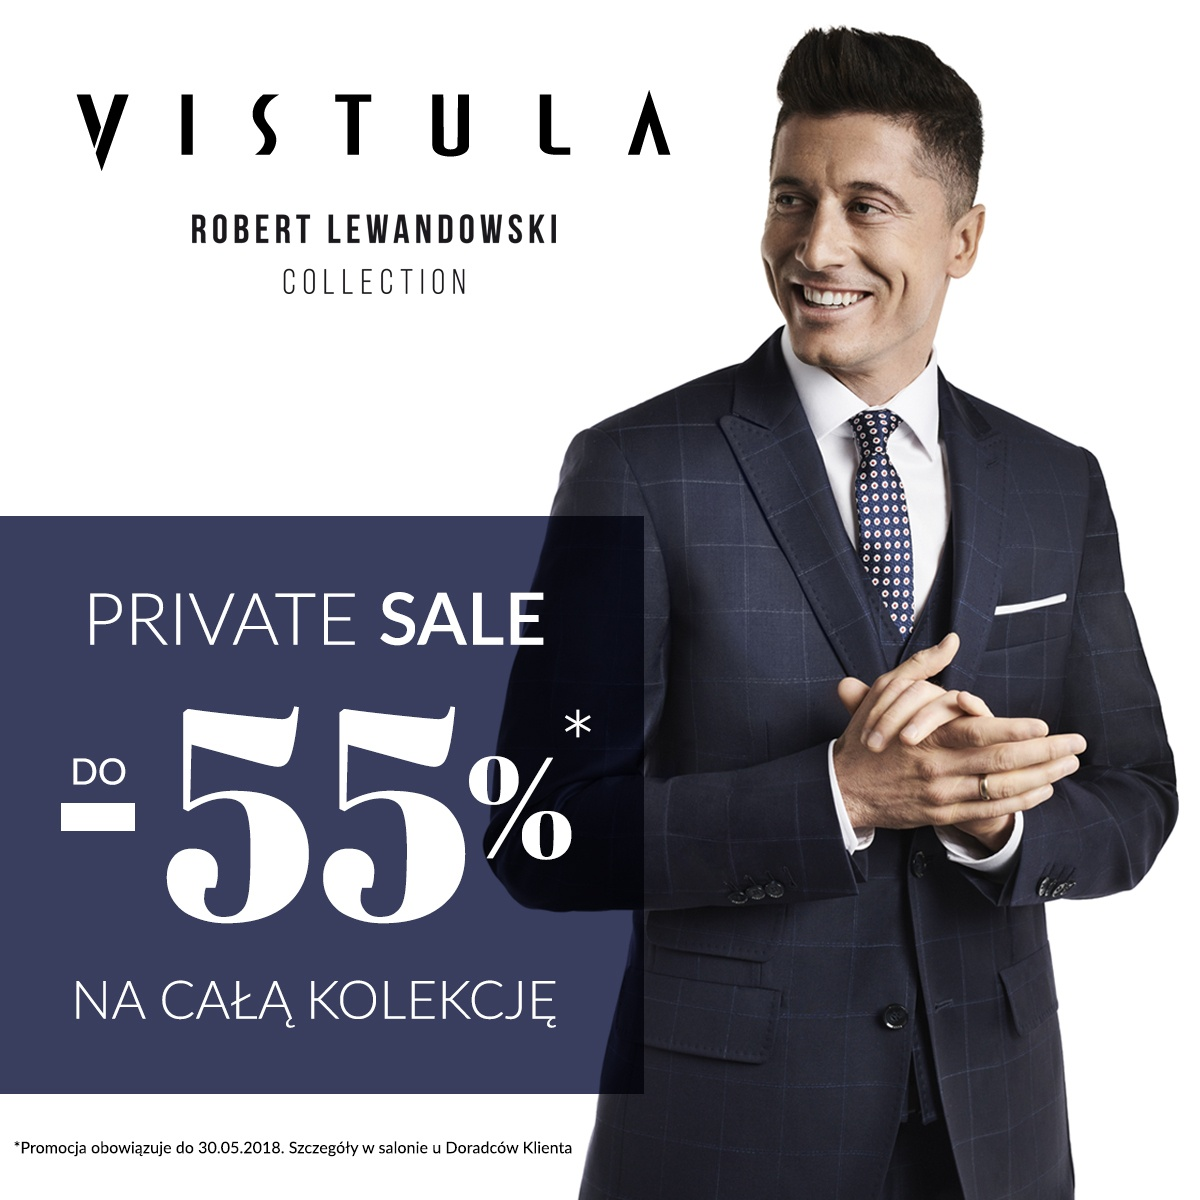 PRIVATE SALE W VISTULI